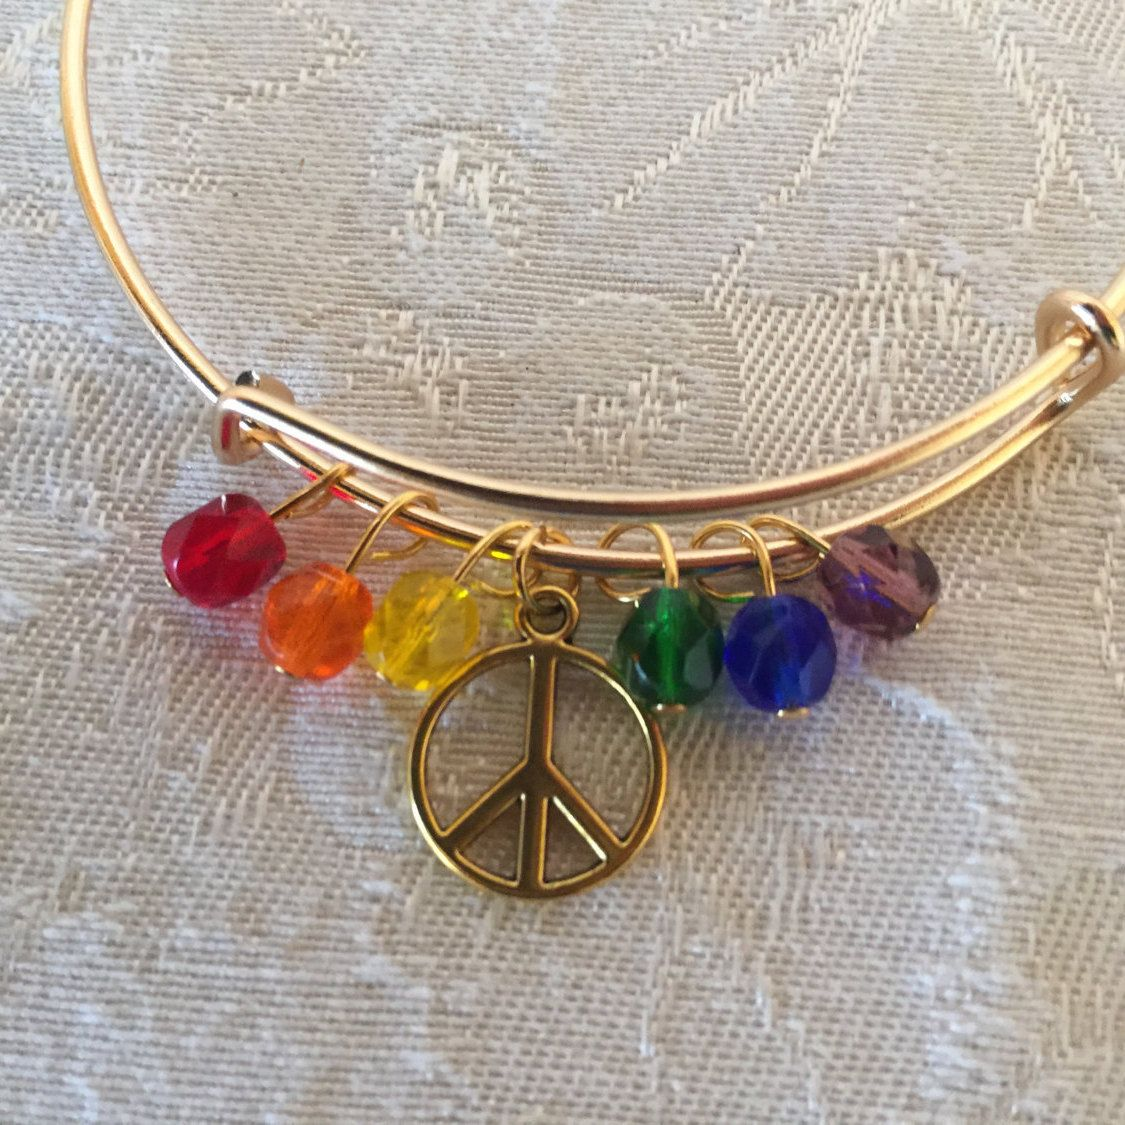 Peace Sign Charm And Crystal Adjustable Wire Bangle Bracelet Gold Tone by cbfcreationsHB on Etsy